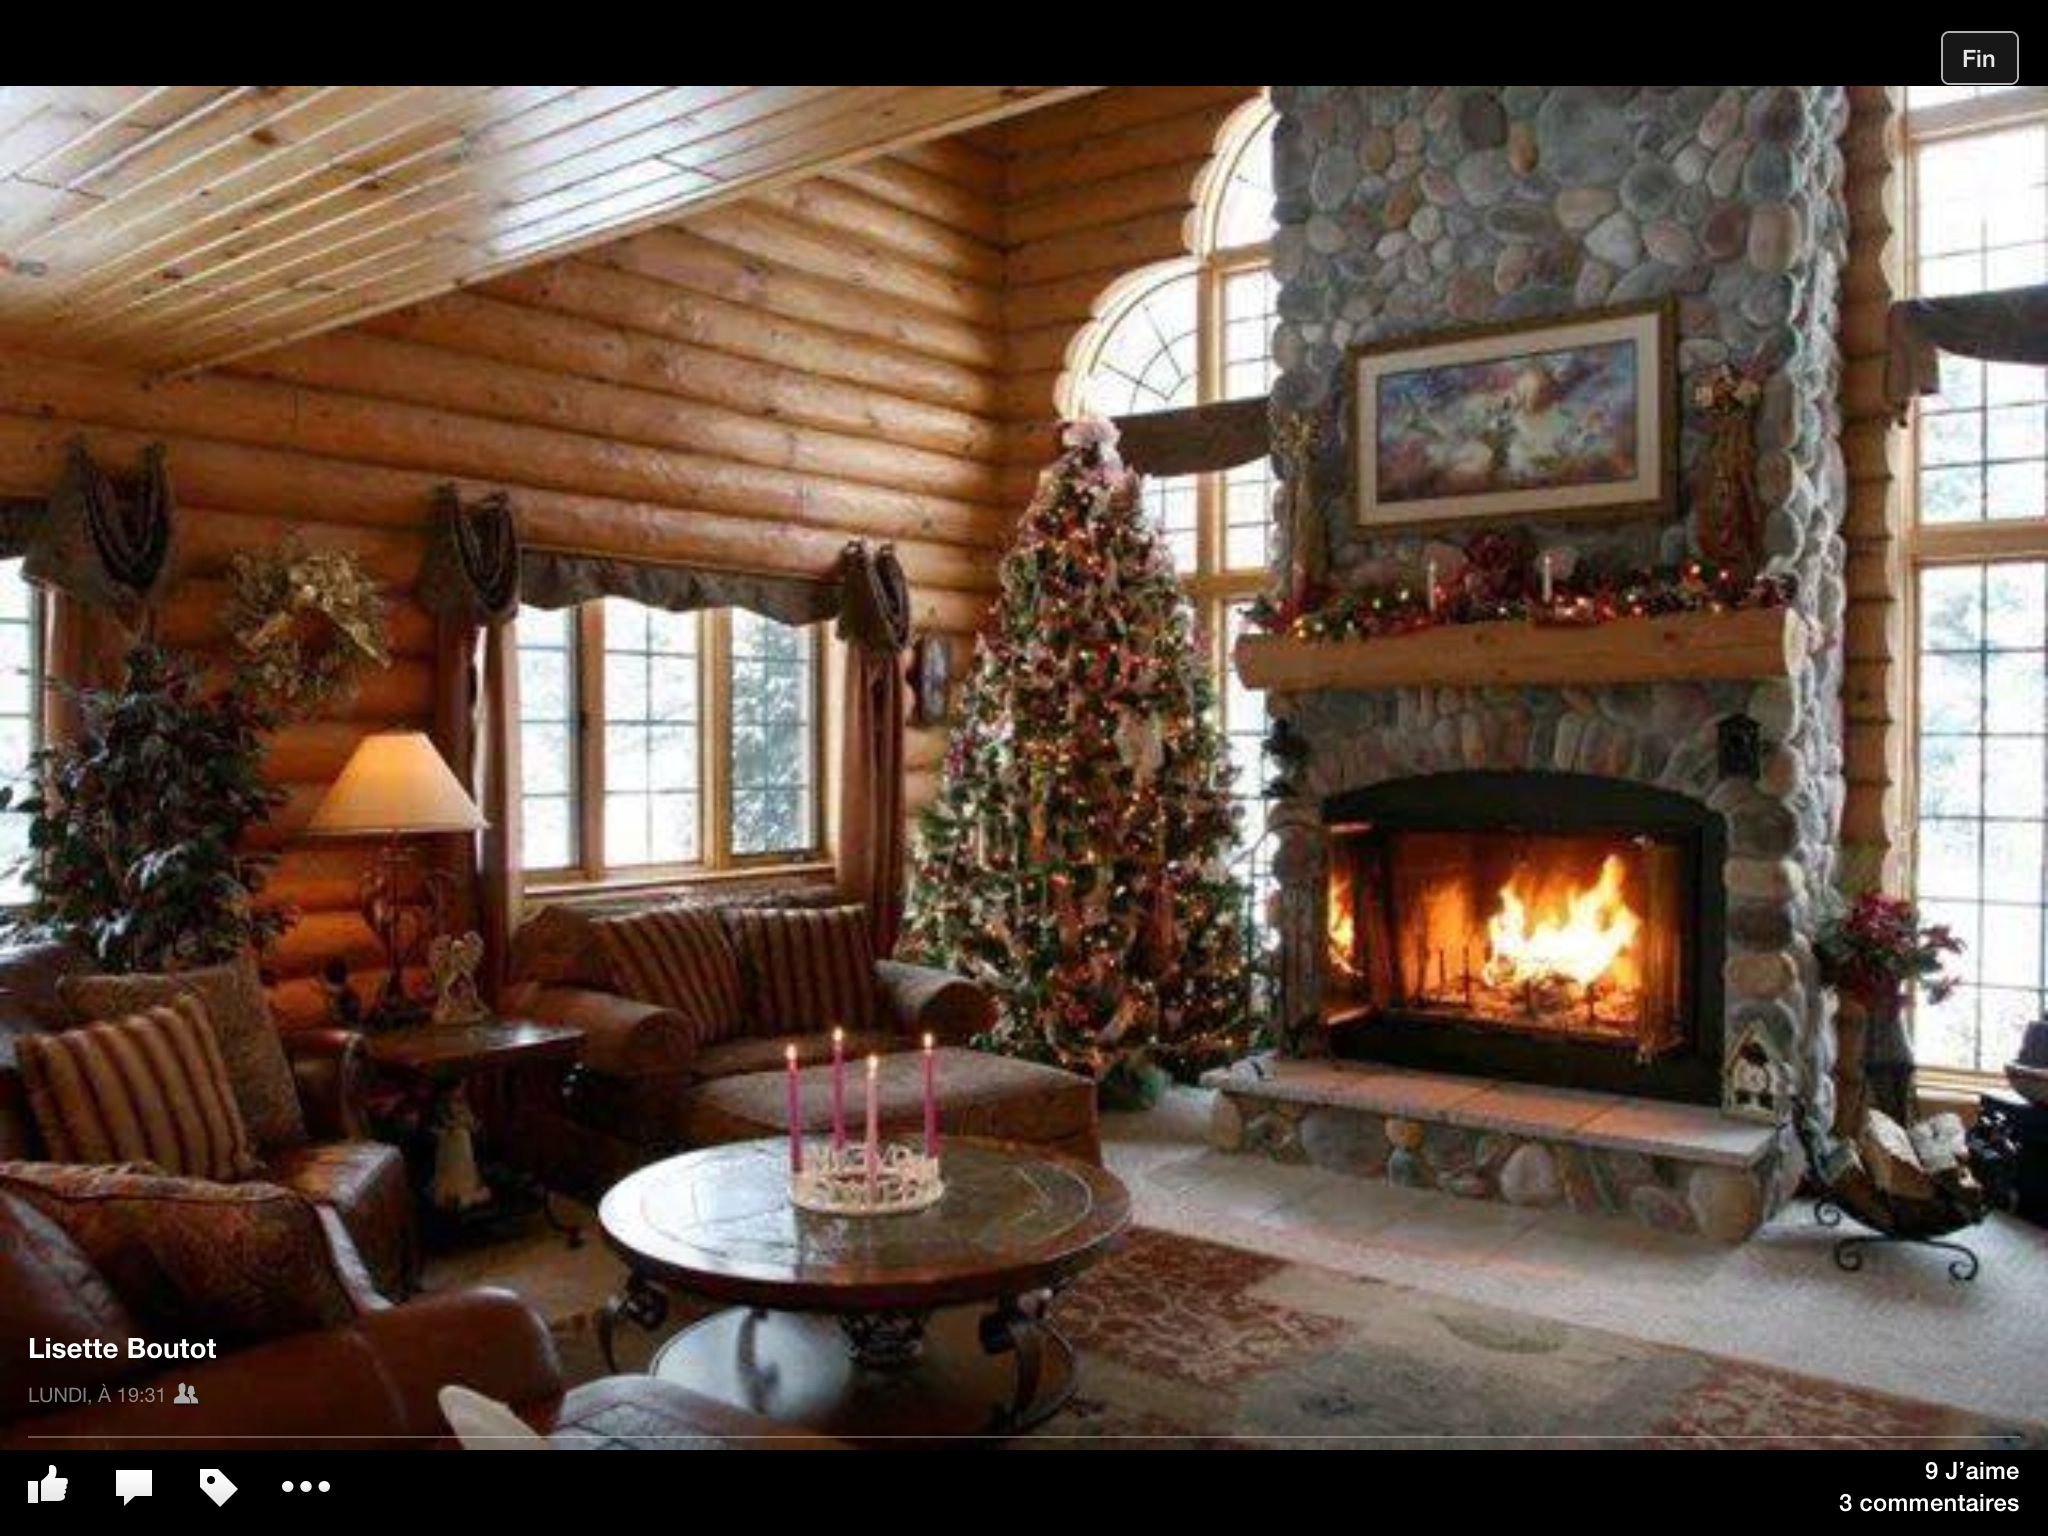 Decoration Interieur Montagne Decorations Noel Interieur Chalet Cabin Sweet Cabin